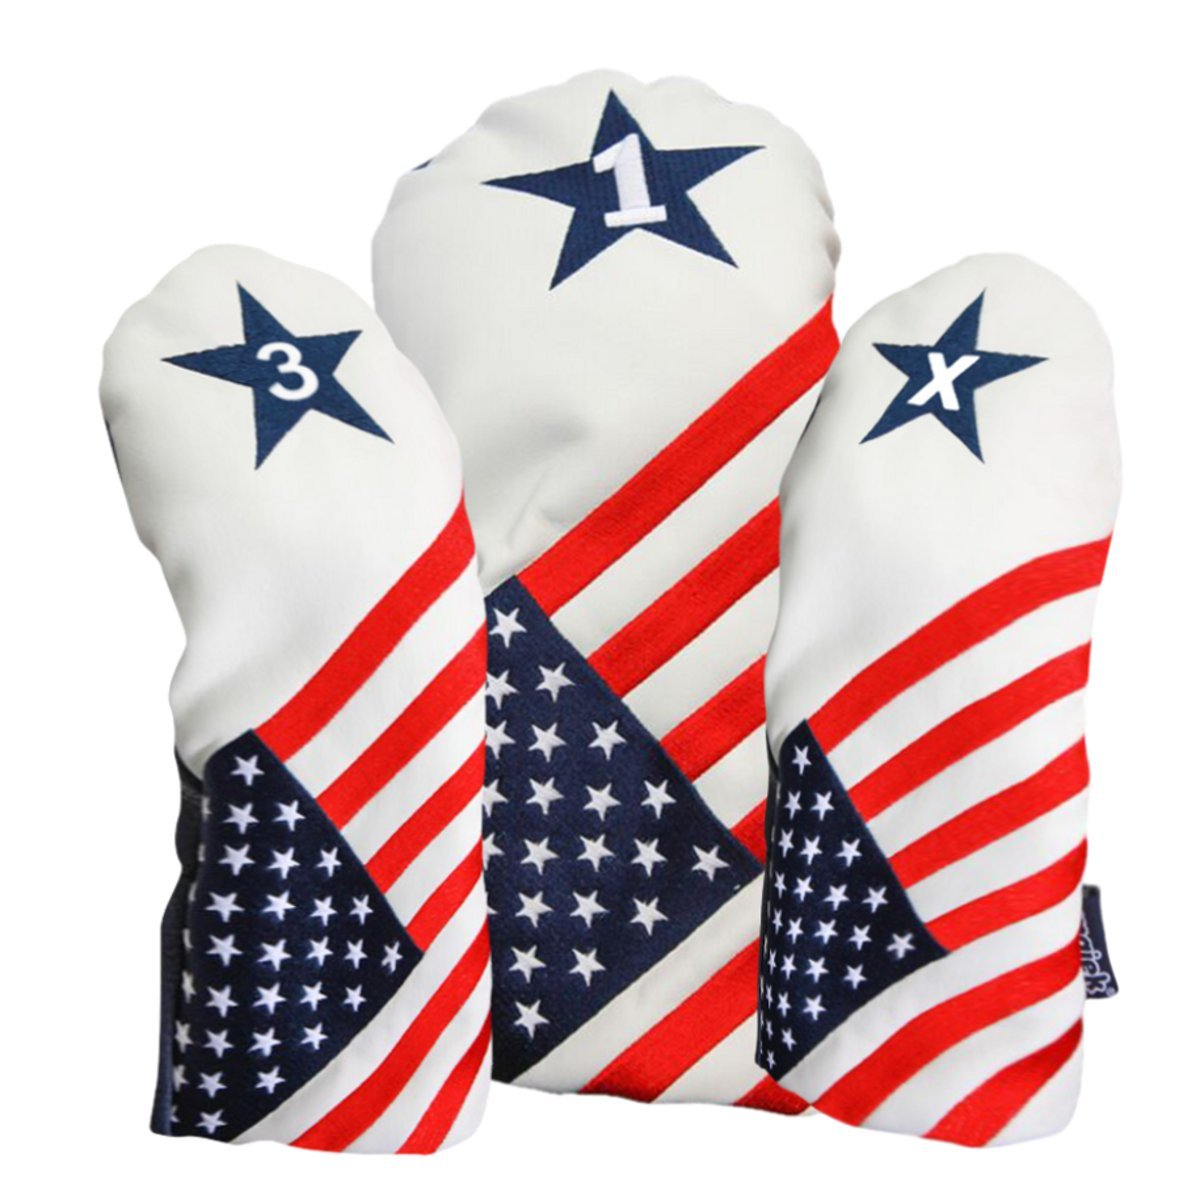 USA 1 3 X Golf Headcover Patriot Vintage Retro Patriotic Driver Fairway Wood Head Cover by Majek USA Vintage Golf Driver Headcover (Image #2)